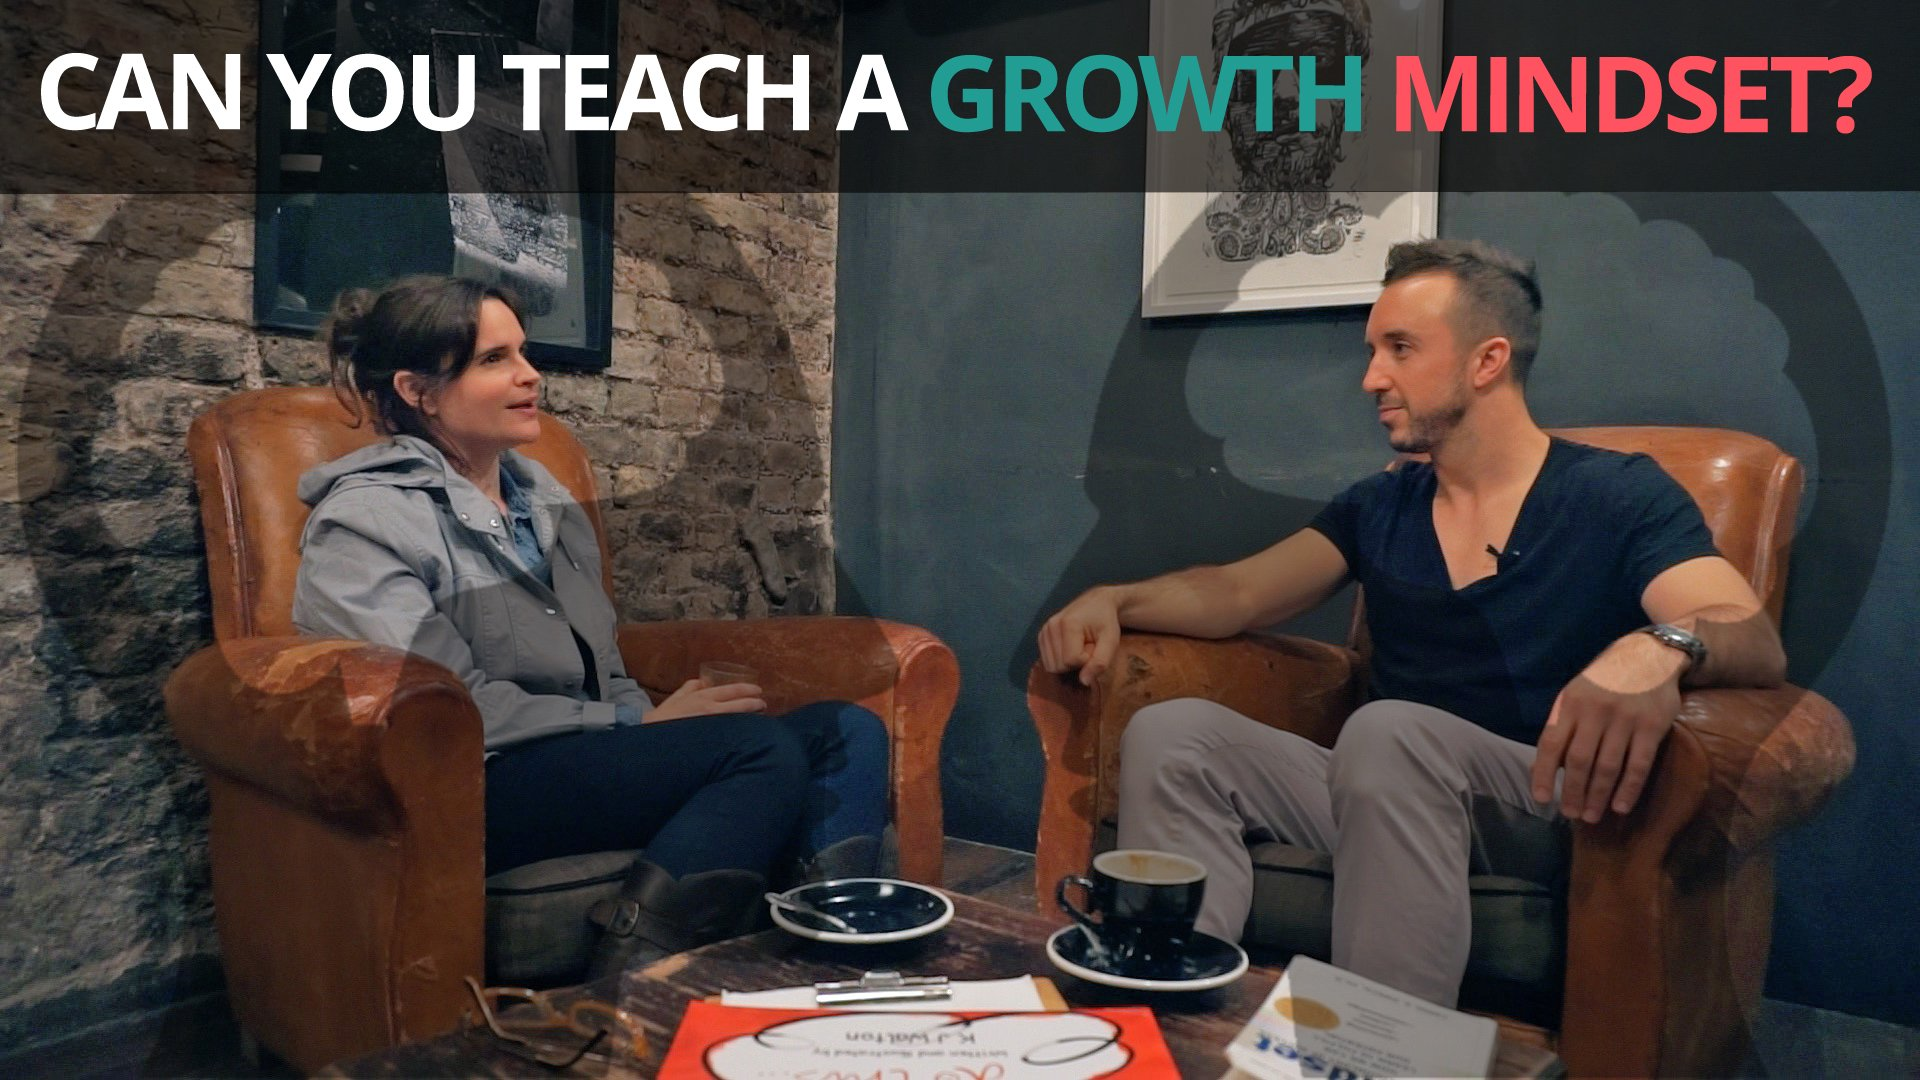 New Video! Can You Teach A Growth Mindset? With Katie Walton